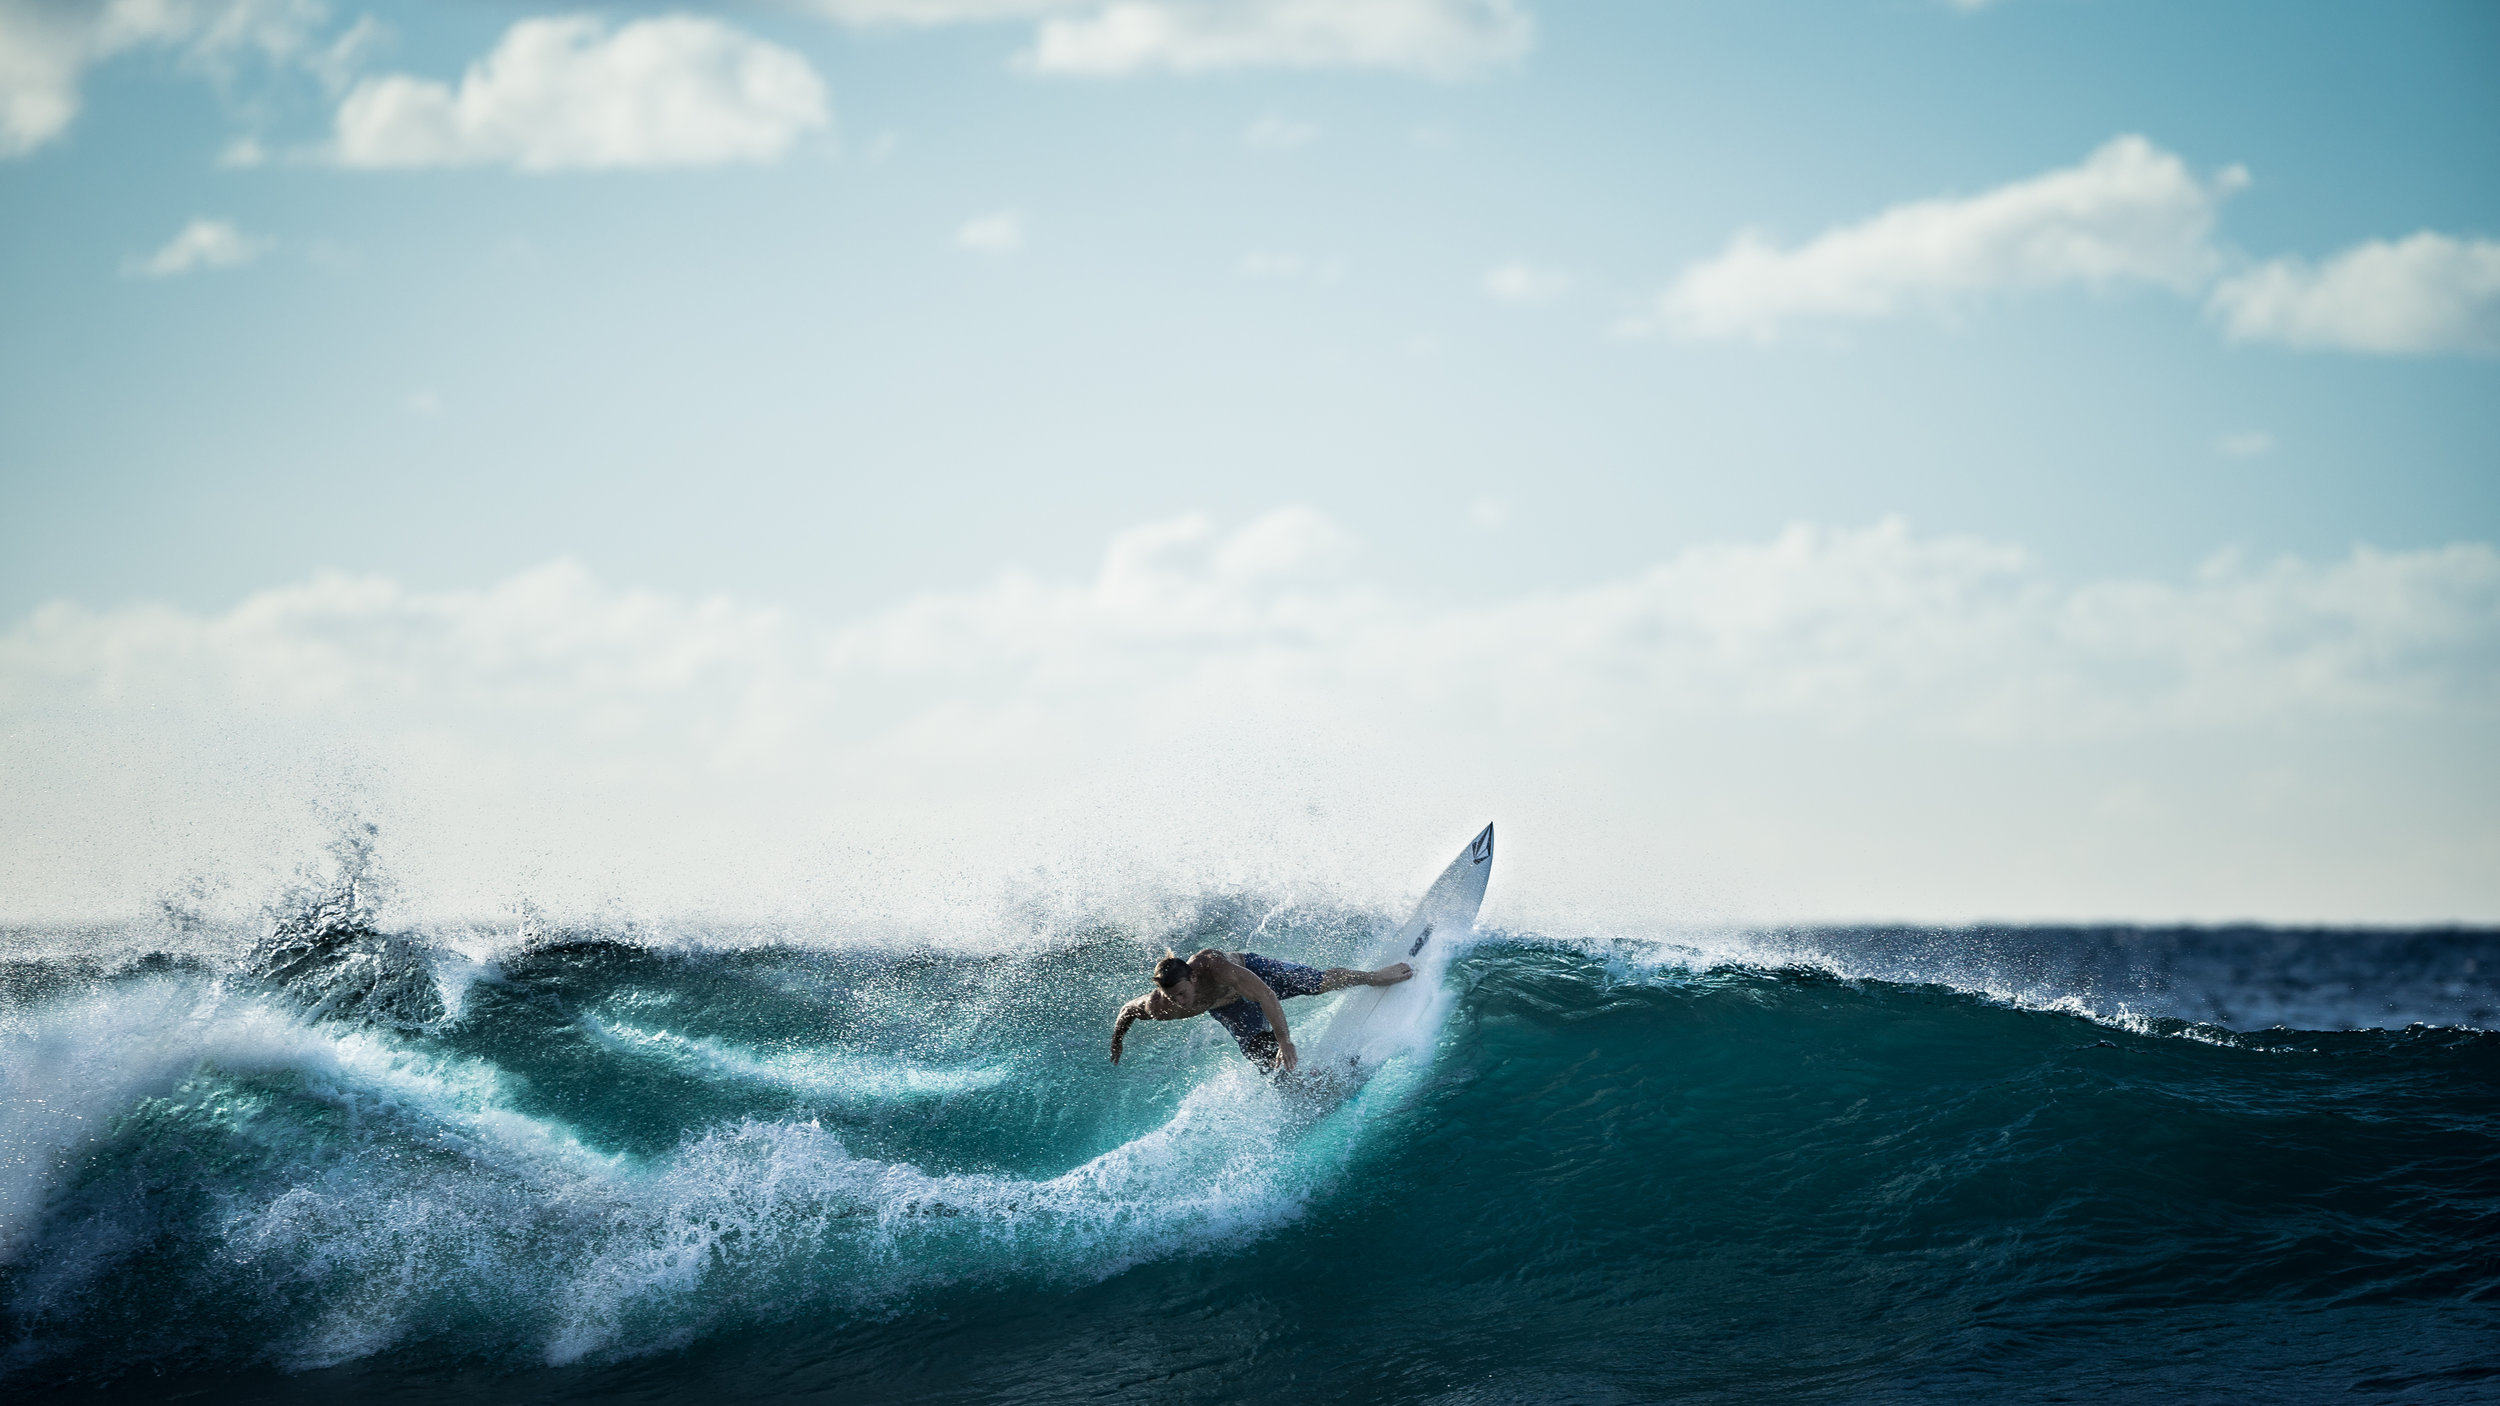 Canva - Person Riding on White Surfboard Doing Surfing.jpg